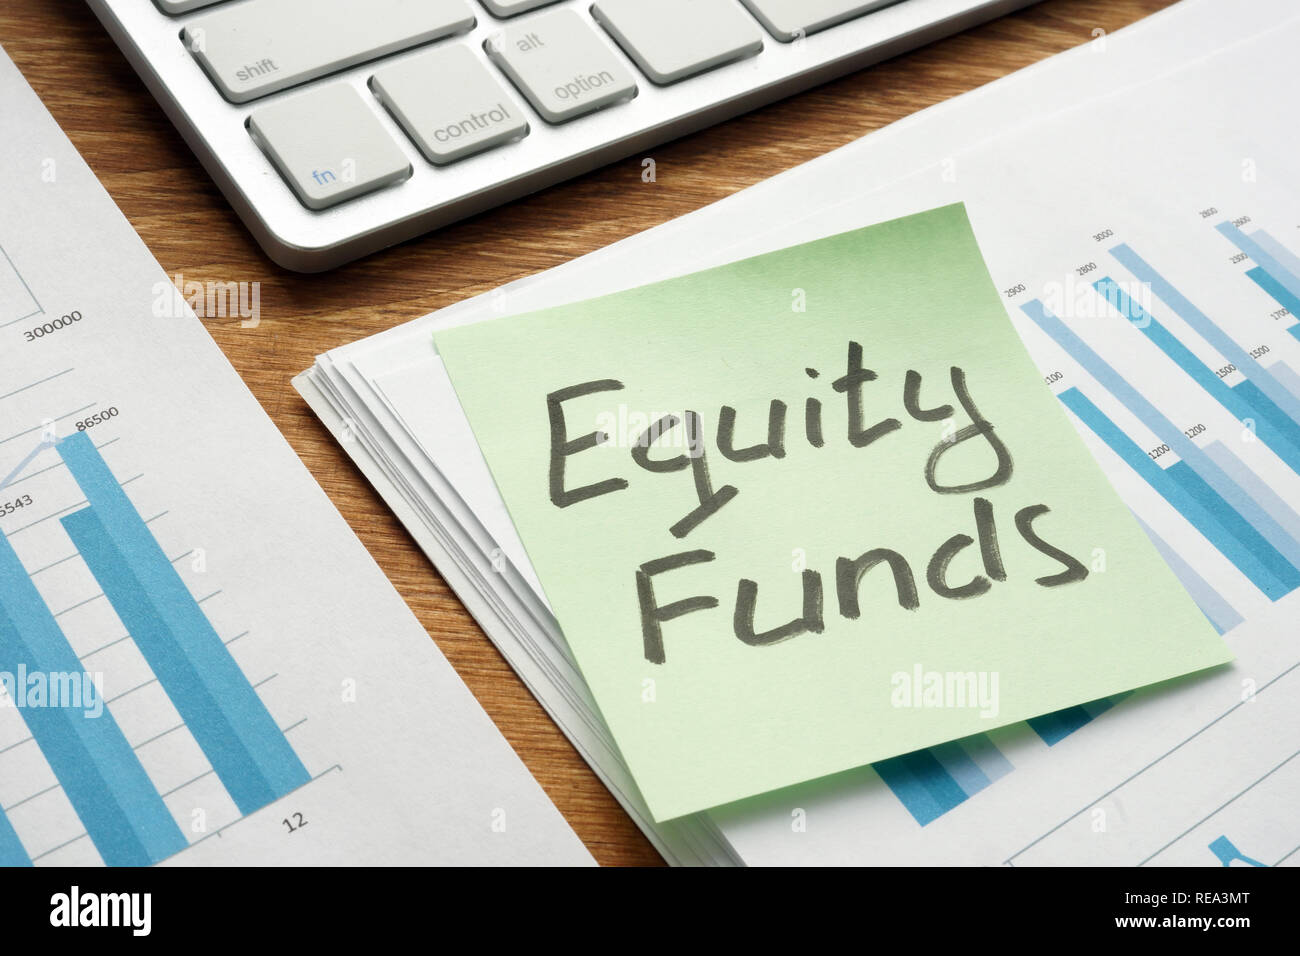 Mutual equity funds written on a piece of paper. - Stock Image